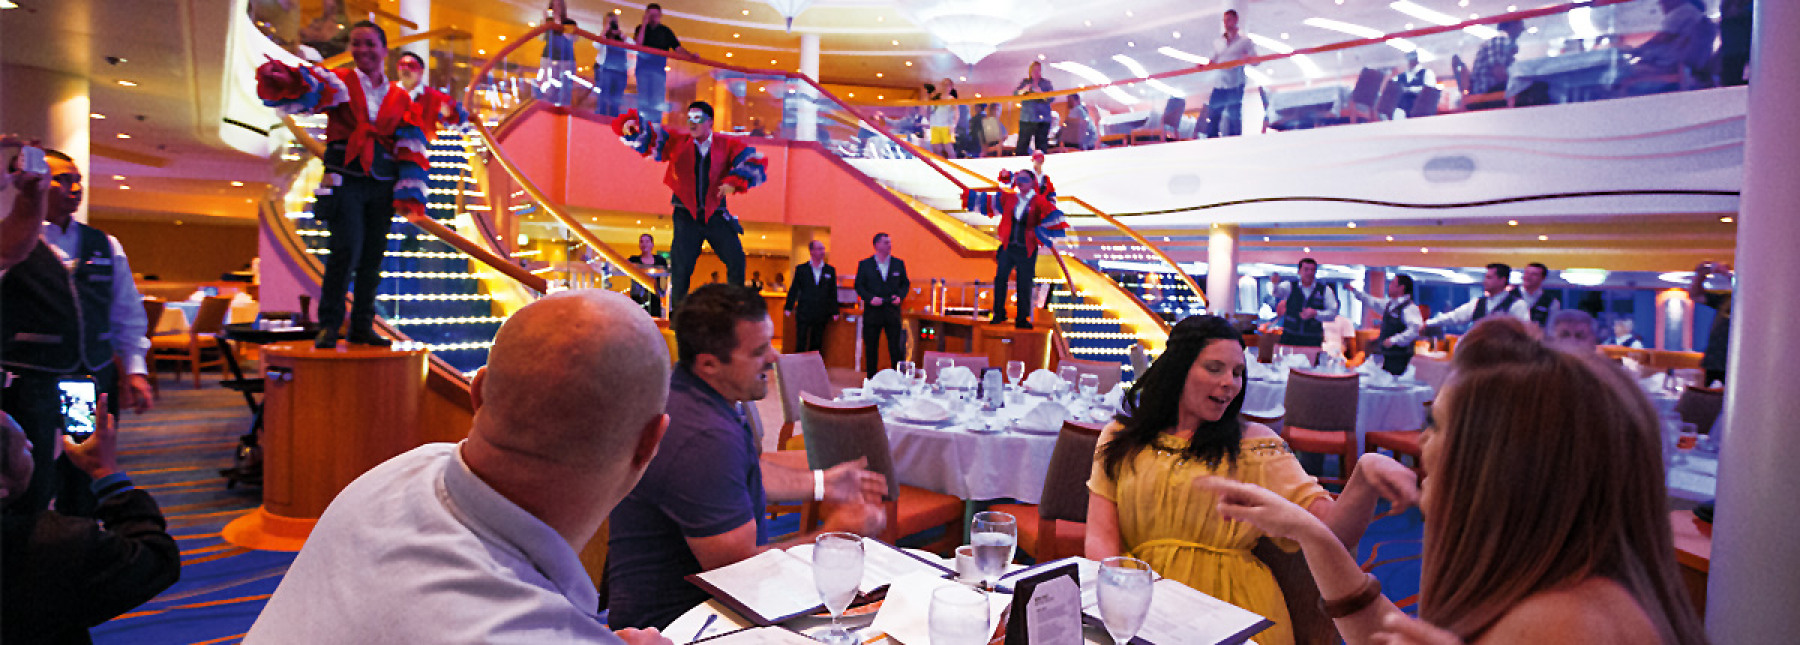 Carnival Cruise Lines Carnival Dream Interioryour-choice-dining-1.jpg